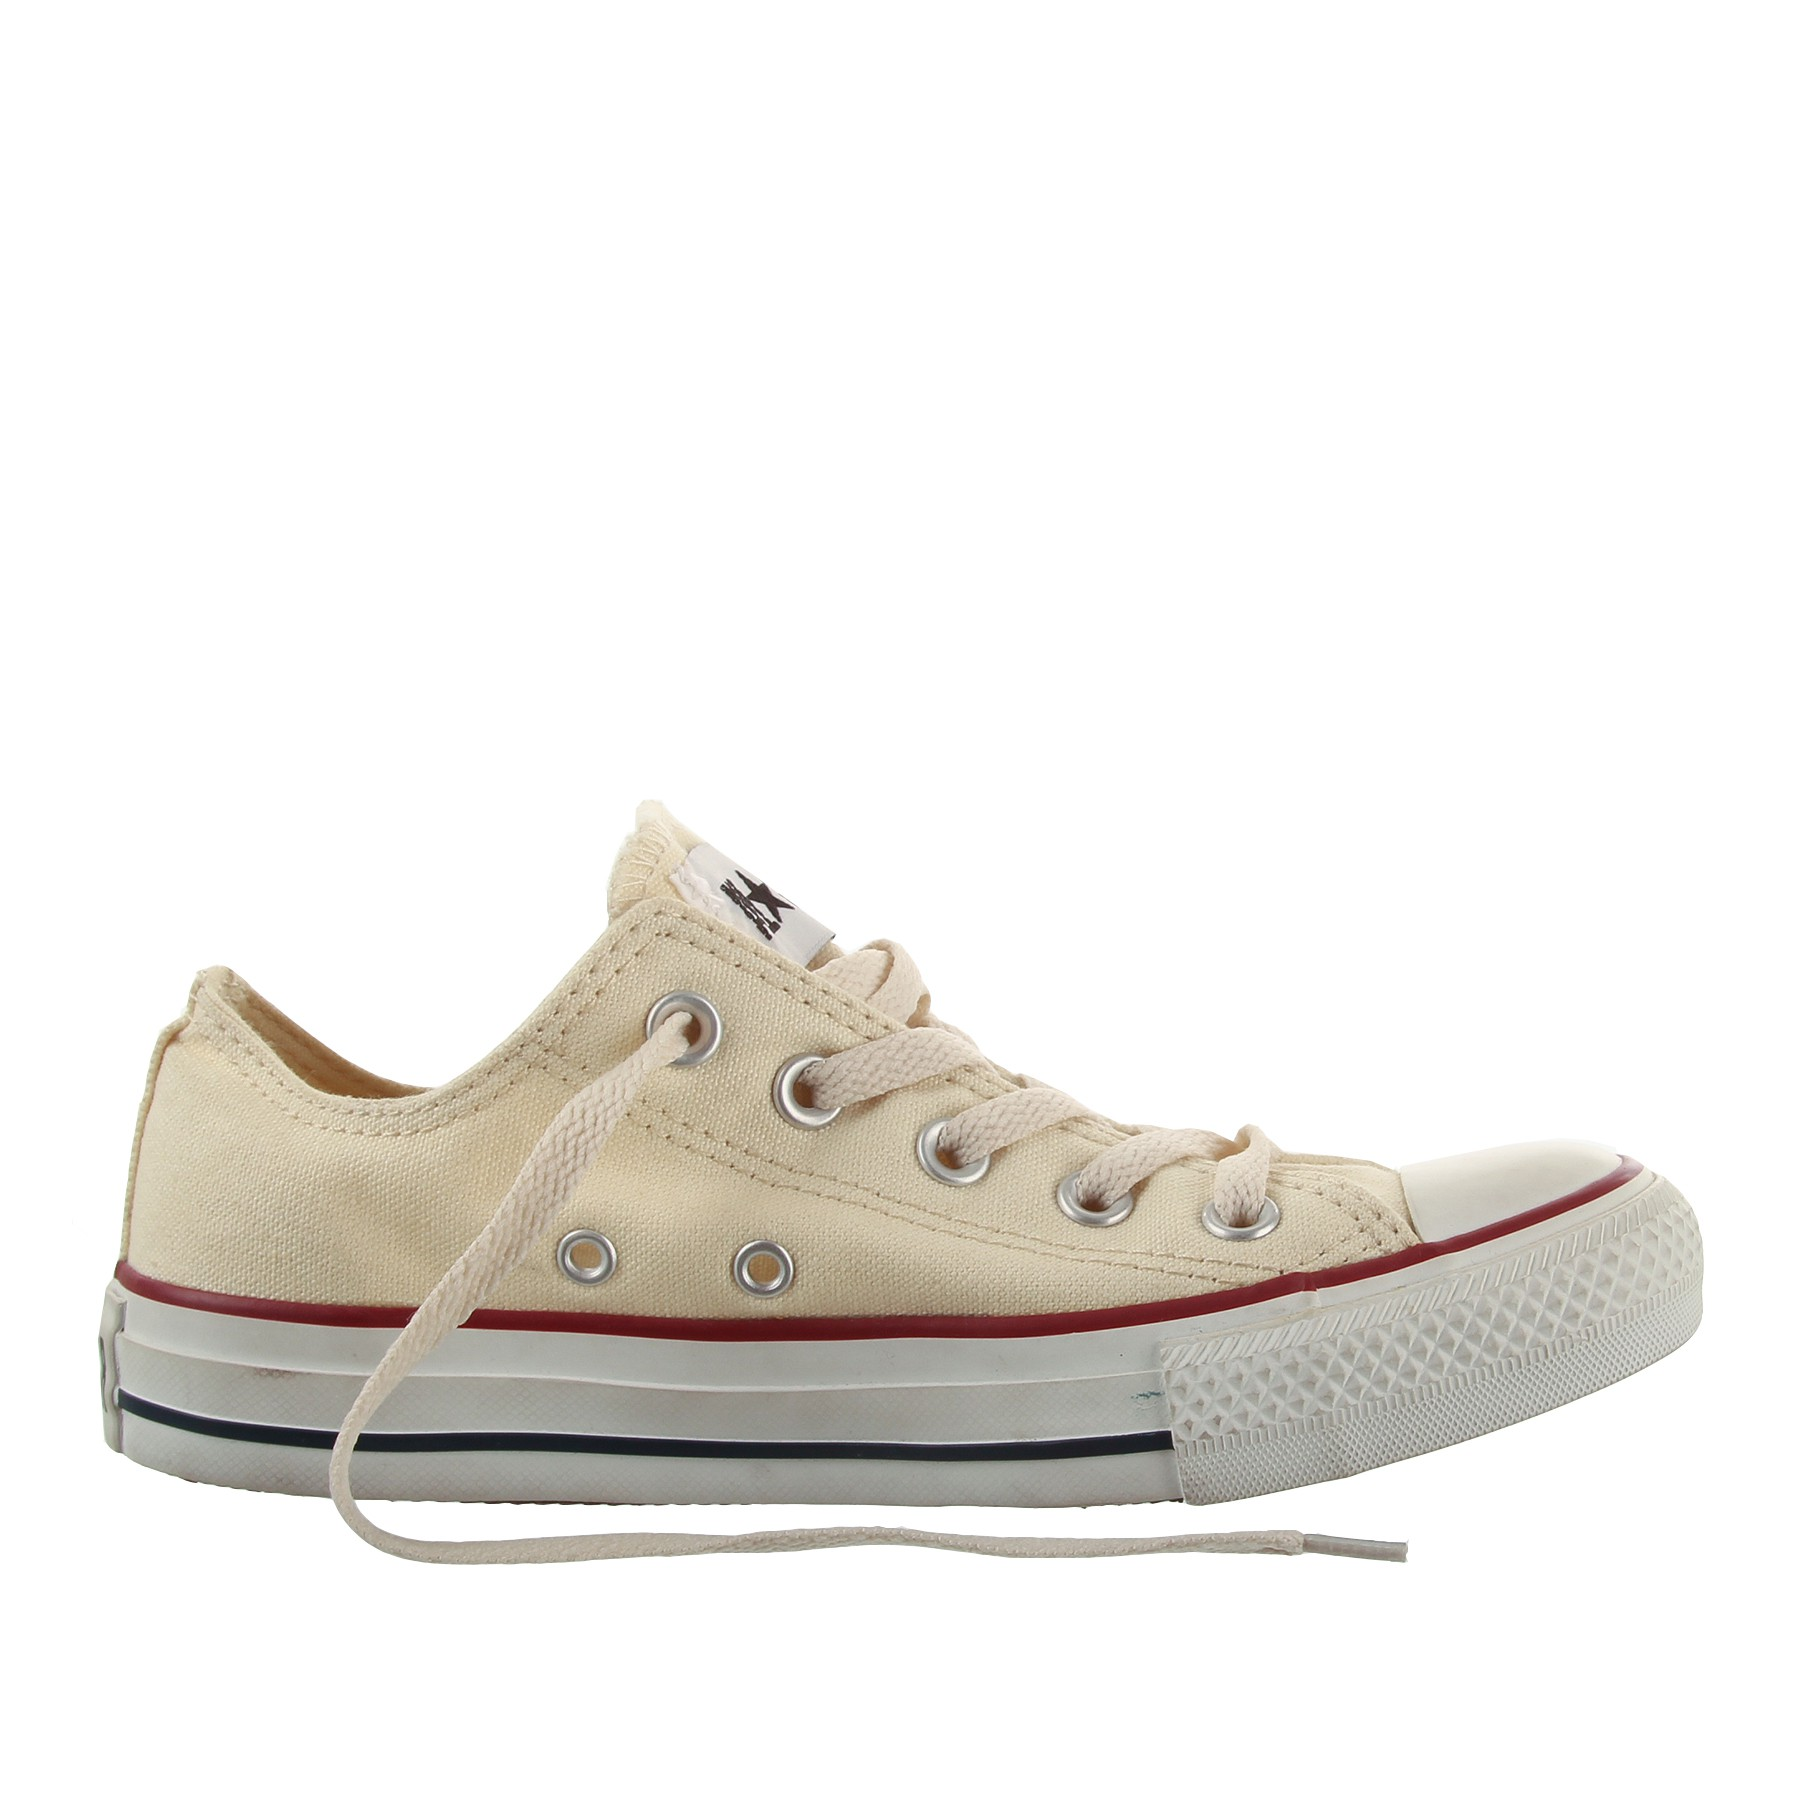 M9165 CT CHUCK TAYLOR AS CORE/ WHITE Bild https://cdn03.plentymarkets.com/zsy4vjx32p87/item/images/4263/full/M9165-ama-03.JPG